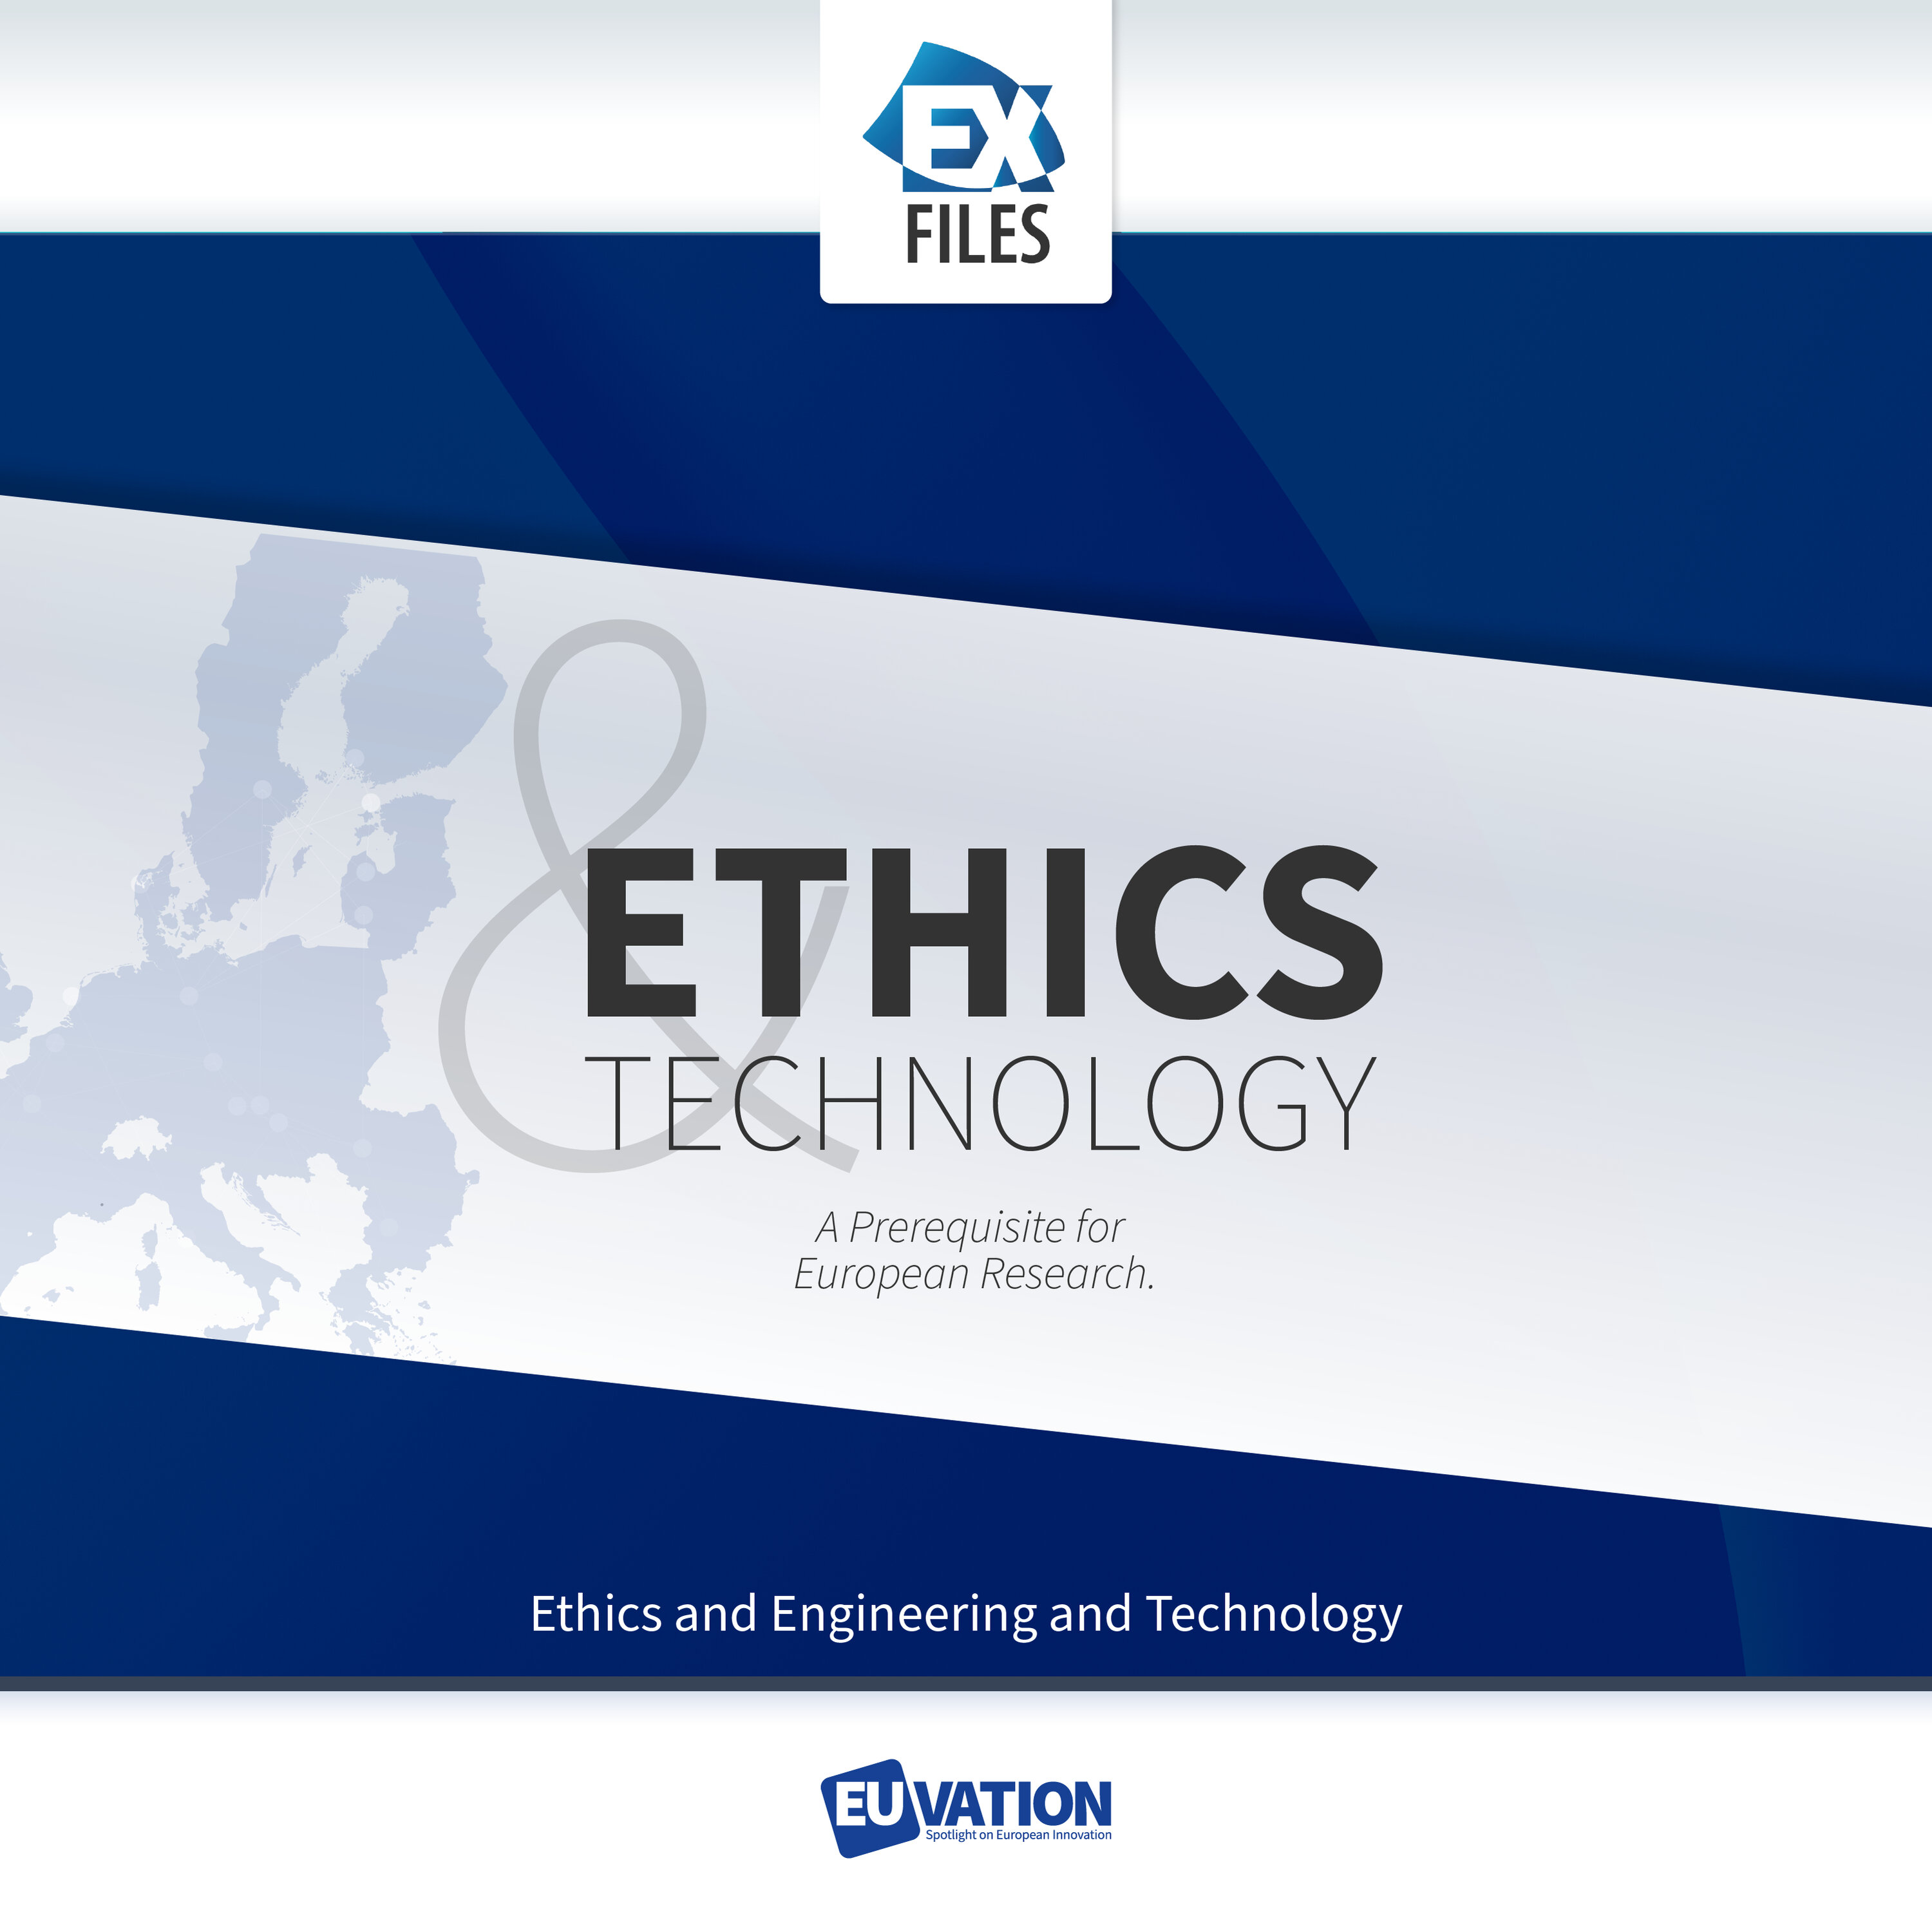 Ethics and Technology (4) – a Prerequisite for European Research: Engineering and Technology